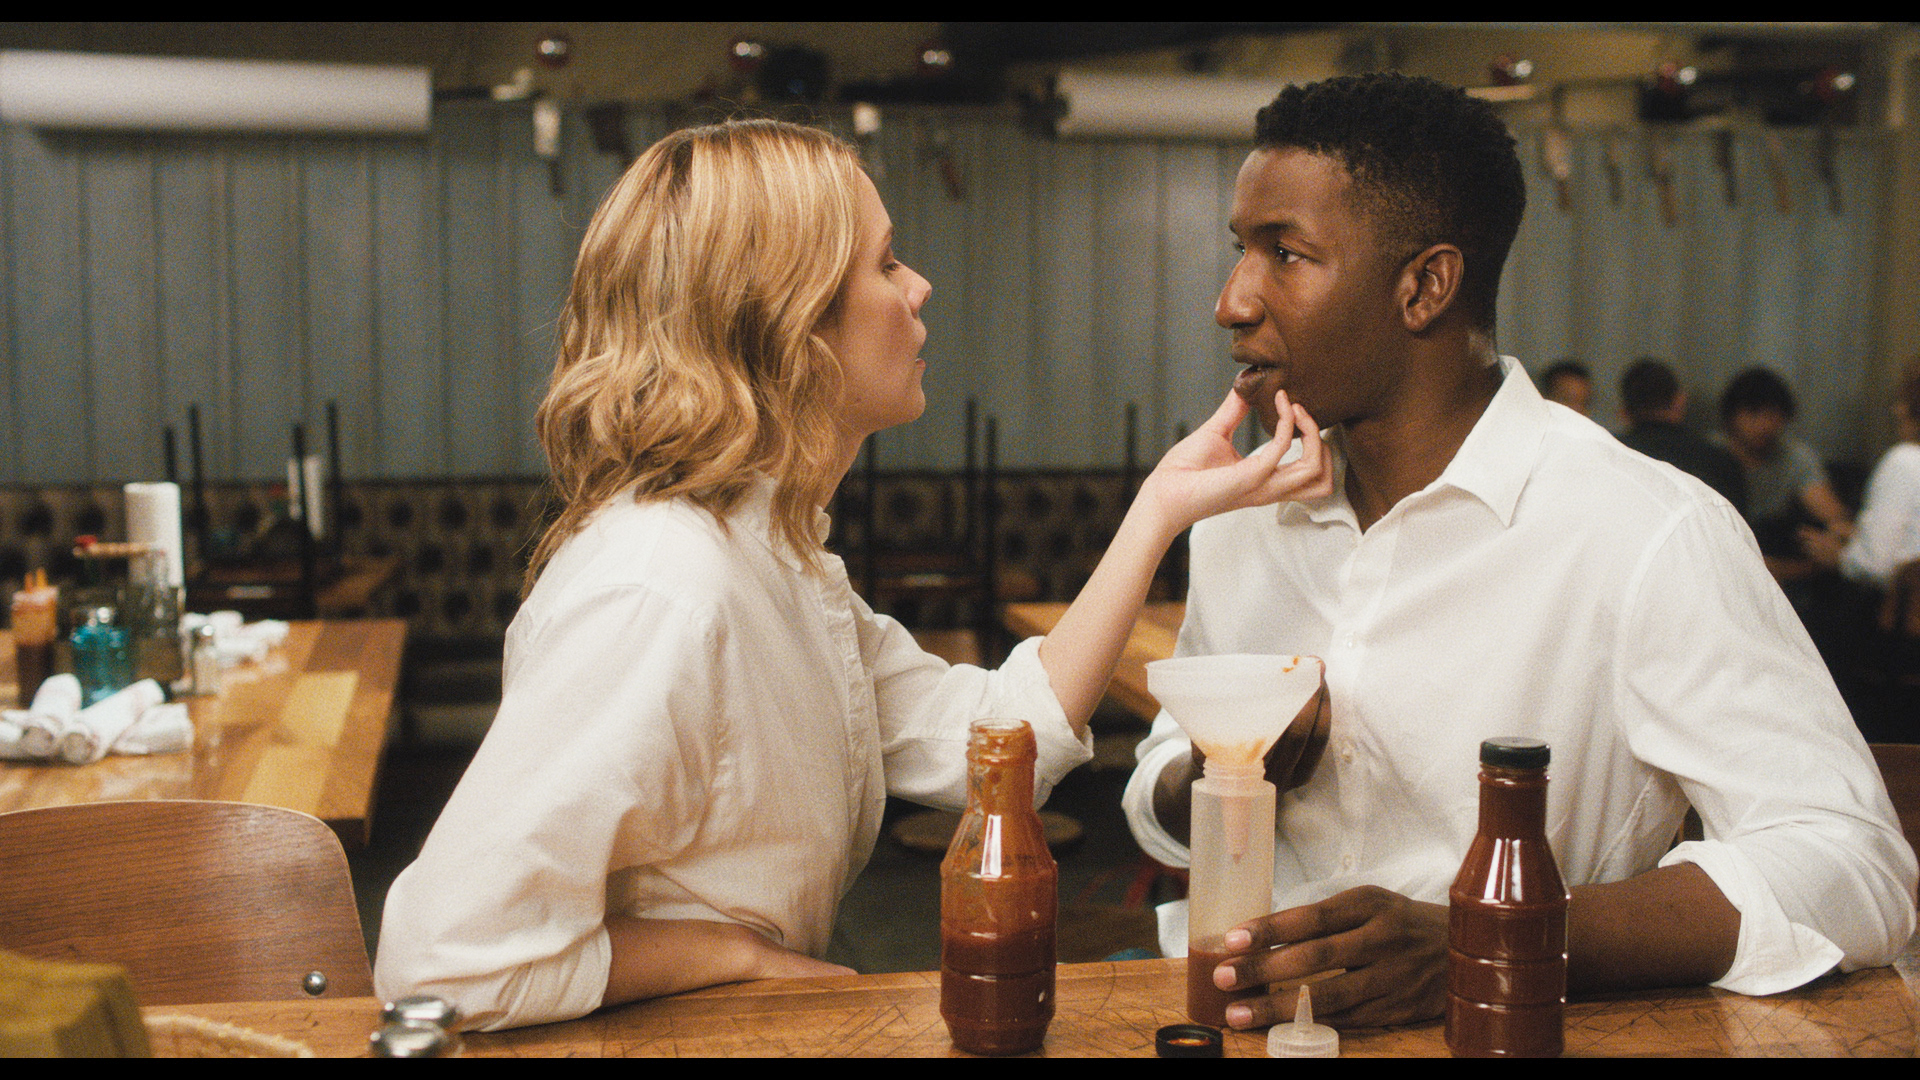 "CAKE -- Episode 3 (Airs Wednesday, October 16, 10:30 PM ET/PT on FXX) -- ""Oh Jerome, No"" -- Pictured: (l-r) Dasha Nekrassova as Barbara, Mamoudou Athie as Jerome. CR: FXX"